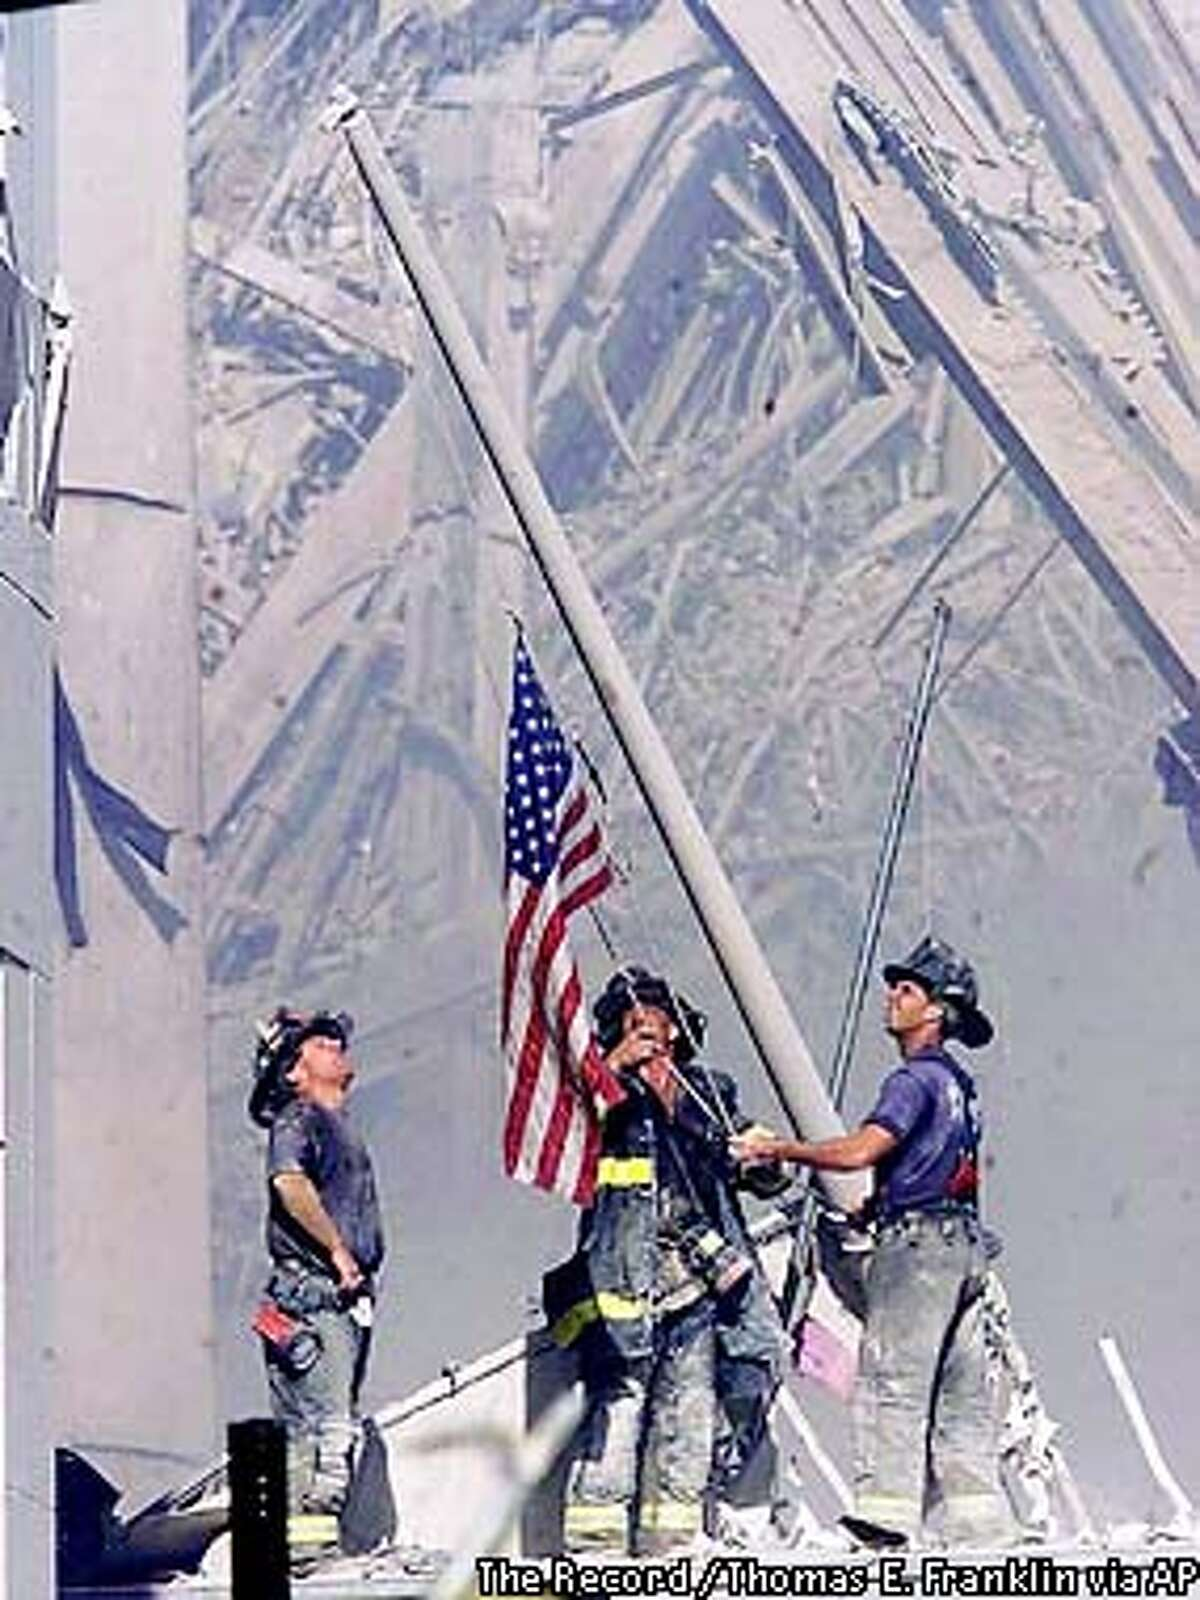 RETRANSMISSION TO ADD MAGAZINES OUT AND -- Firefighters raise a flag at the World Trade Center in New York Tuesday, Sept. 11, 2001, as work at the site continues after hijackers crashed two airliners into the center. (AP Photo/The Record, Thomas E. Franklin)MANDATORY CREDIT ALSO RAN 12/30/01